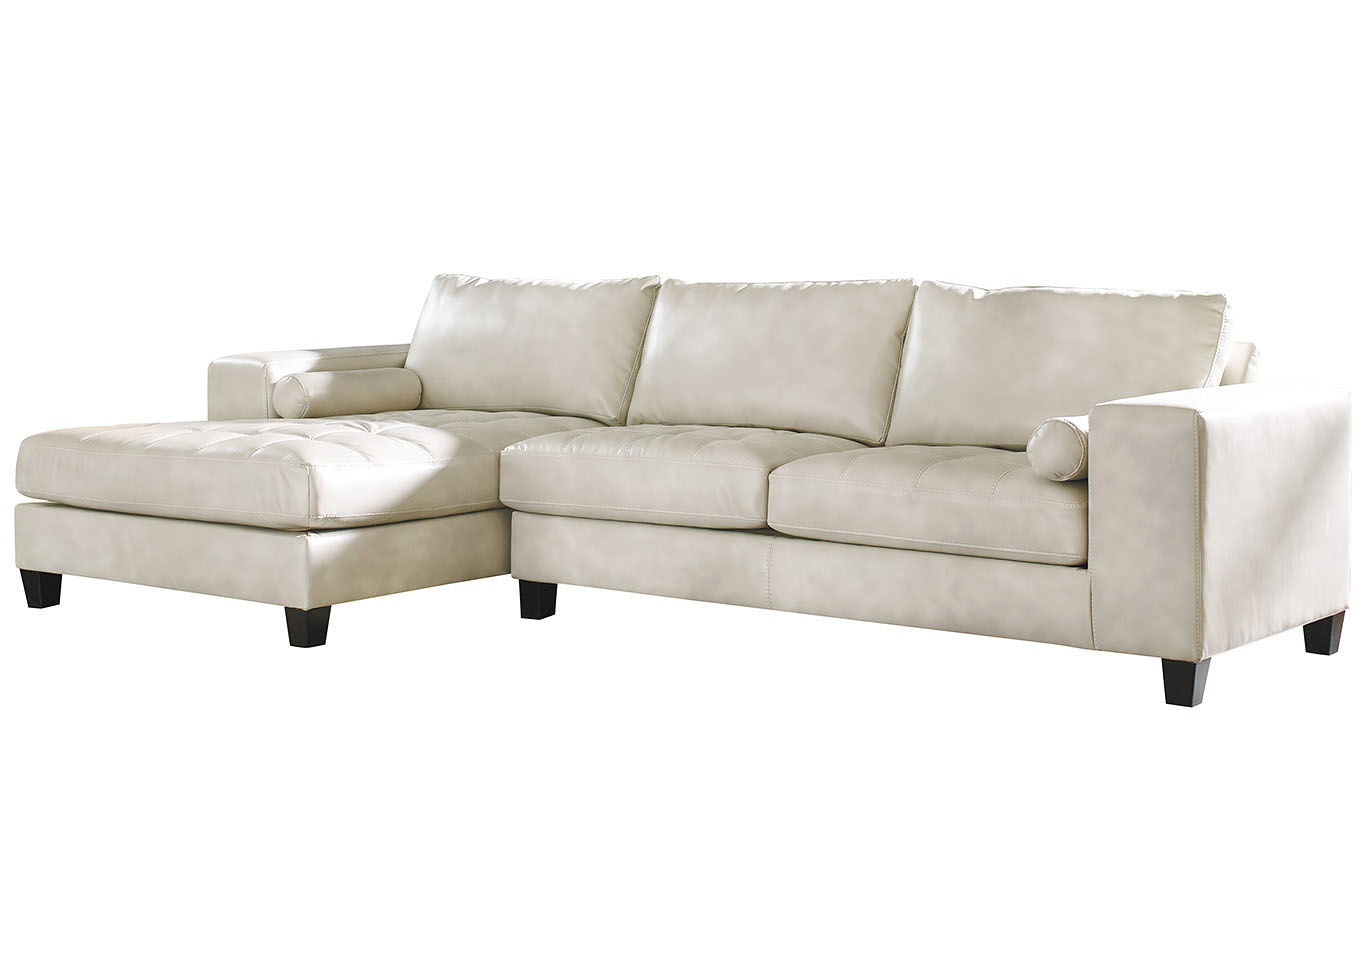 Nokomis Arctic Right Facing Sofa Corner Chaise Sectional,Signature Design  By Ashley